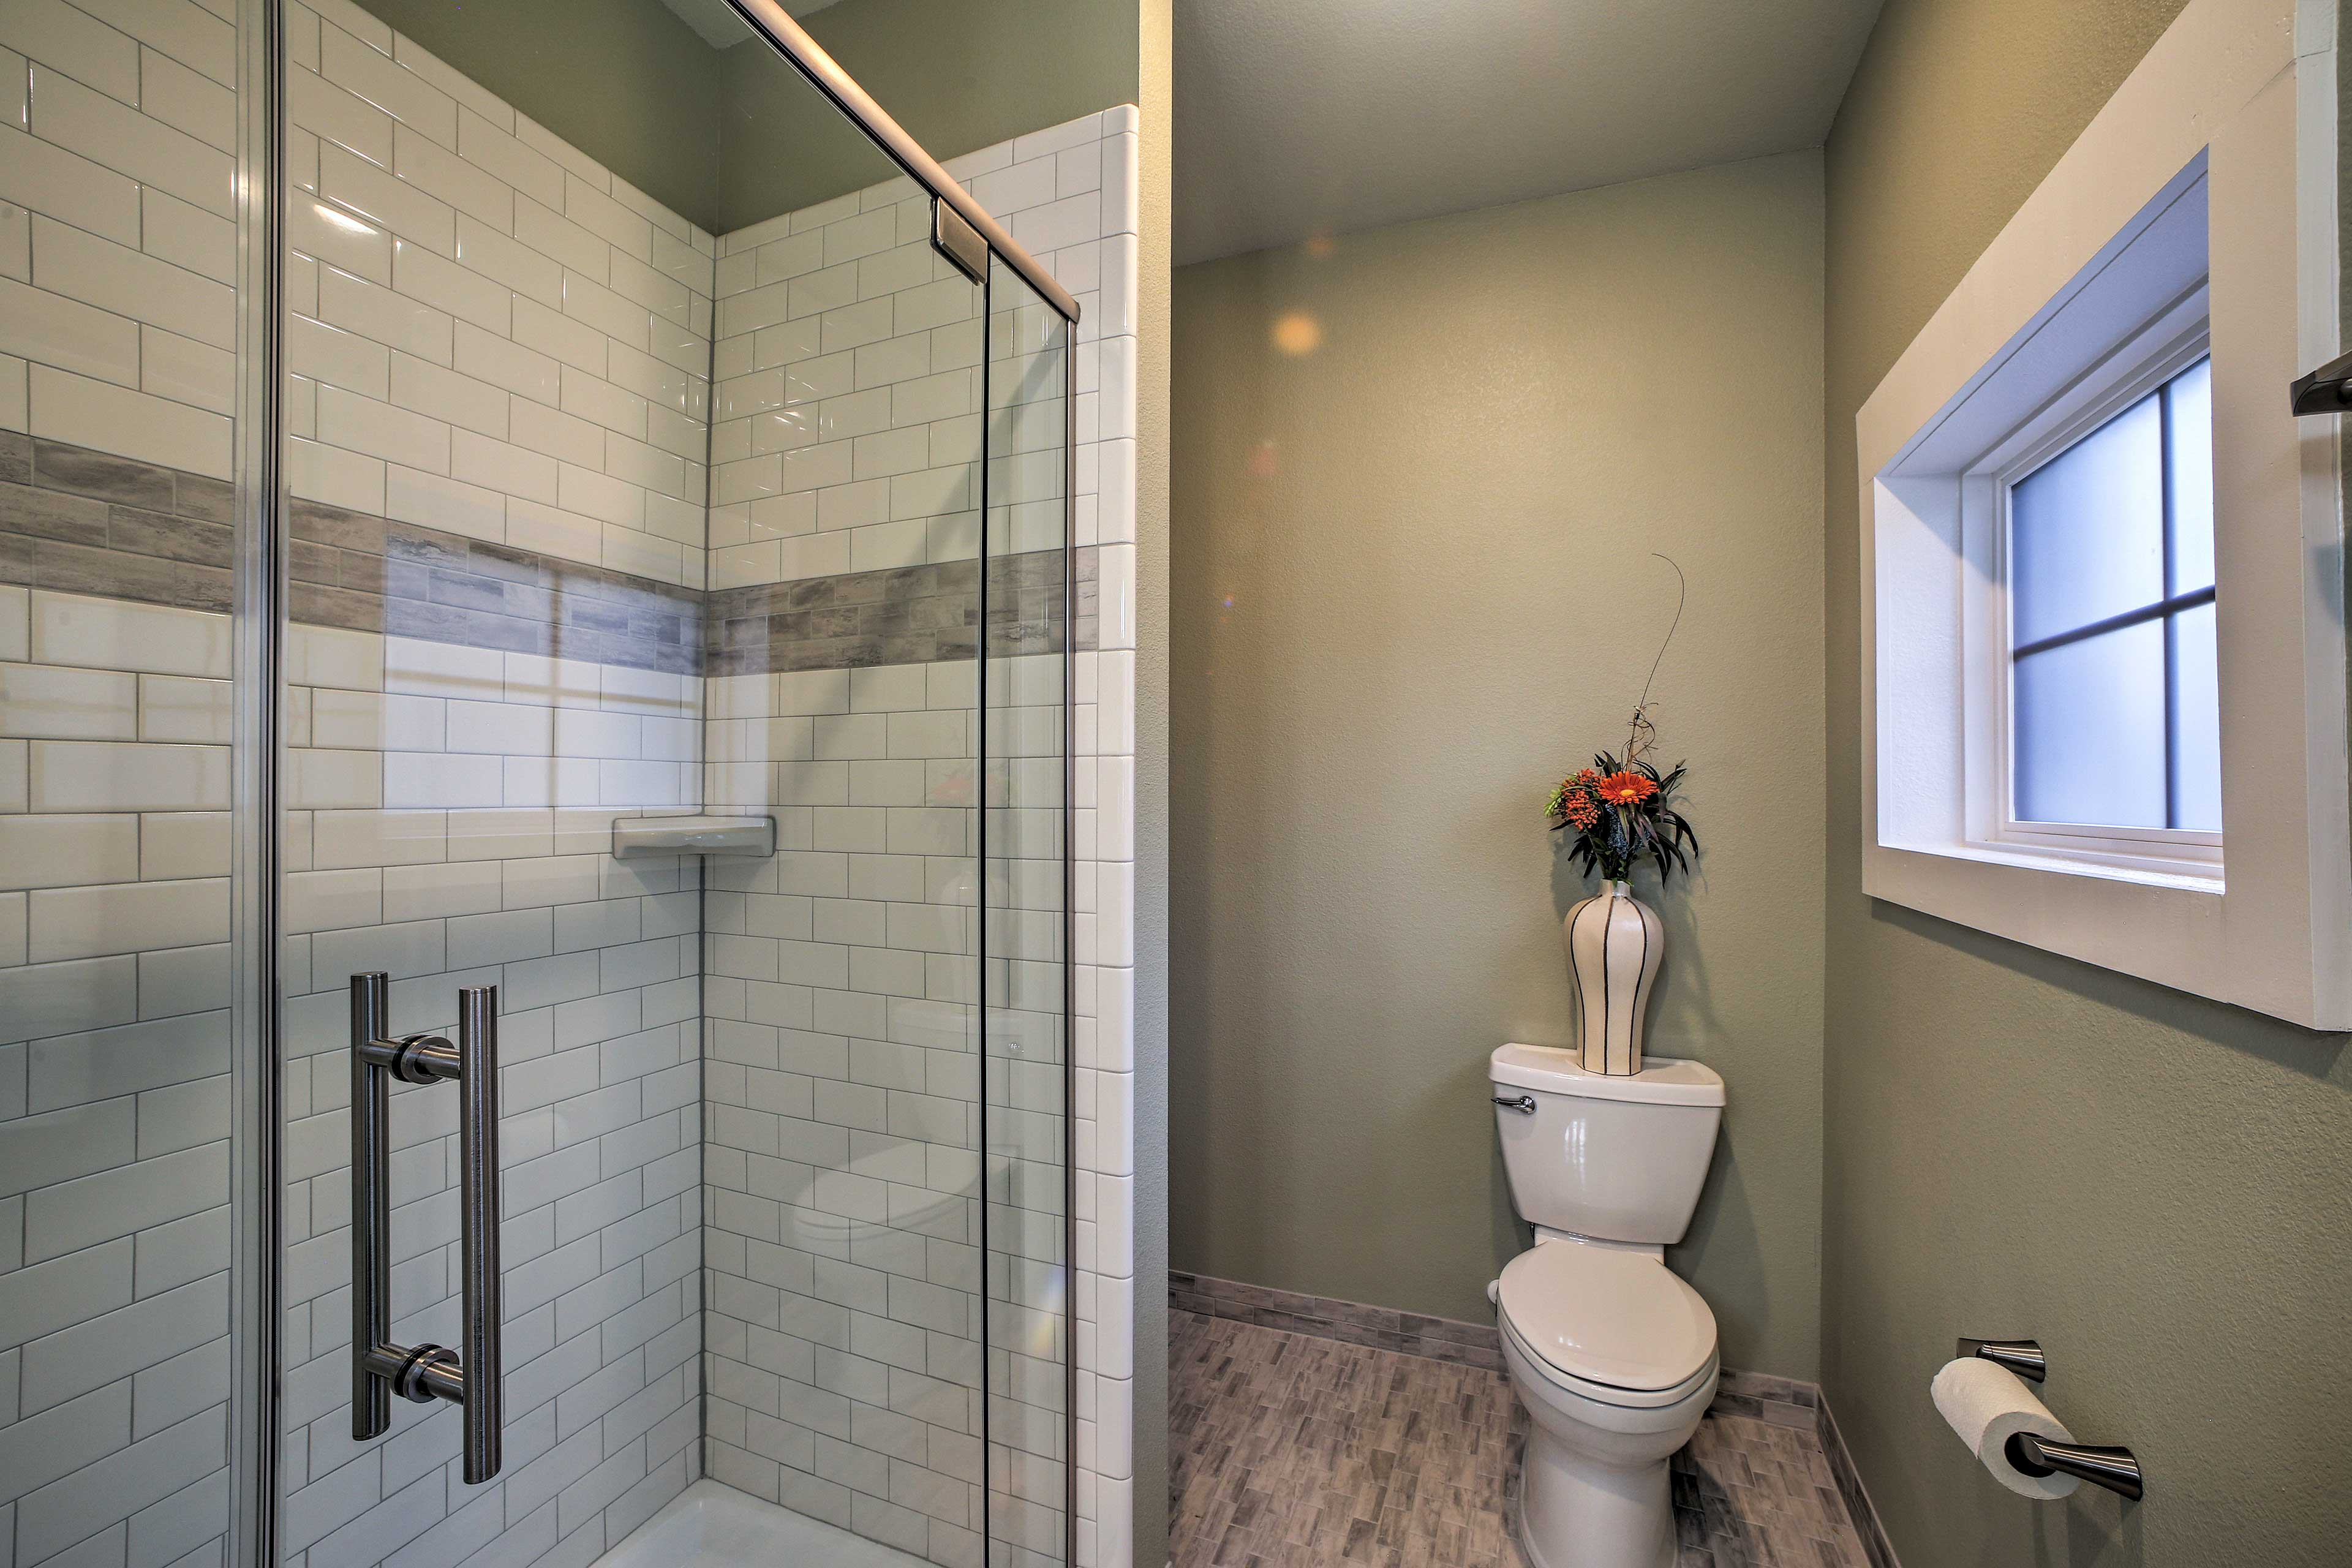 Take a cleansing rinse in the shower/tub combo.